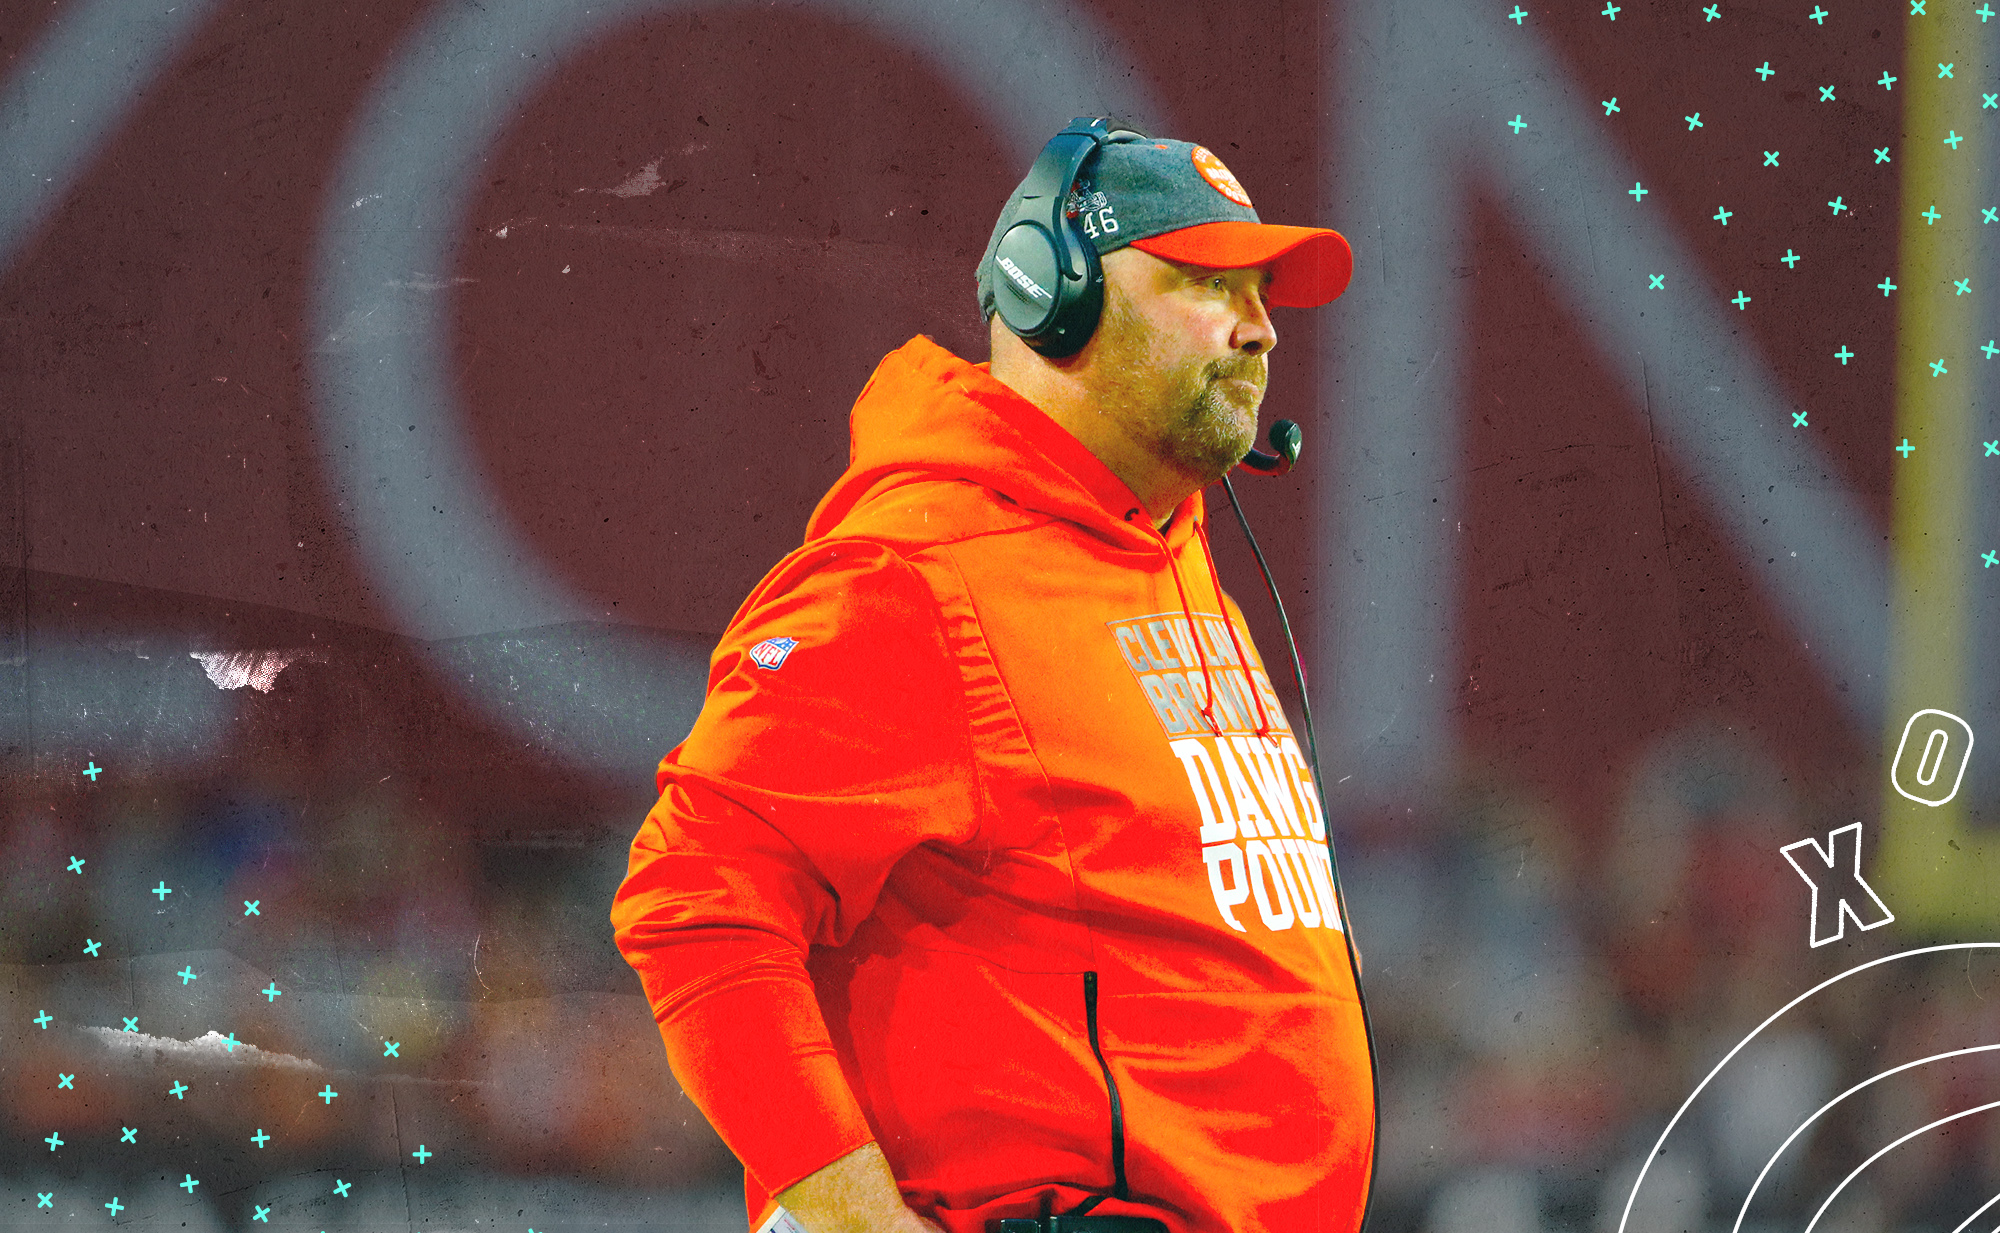 A side profile of Browns coach Freddie Kitchens, wearing a headset, with white X's and O's in the background